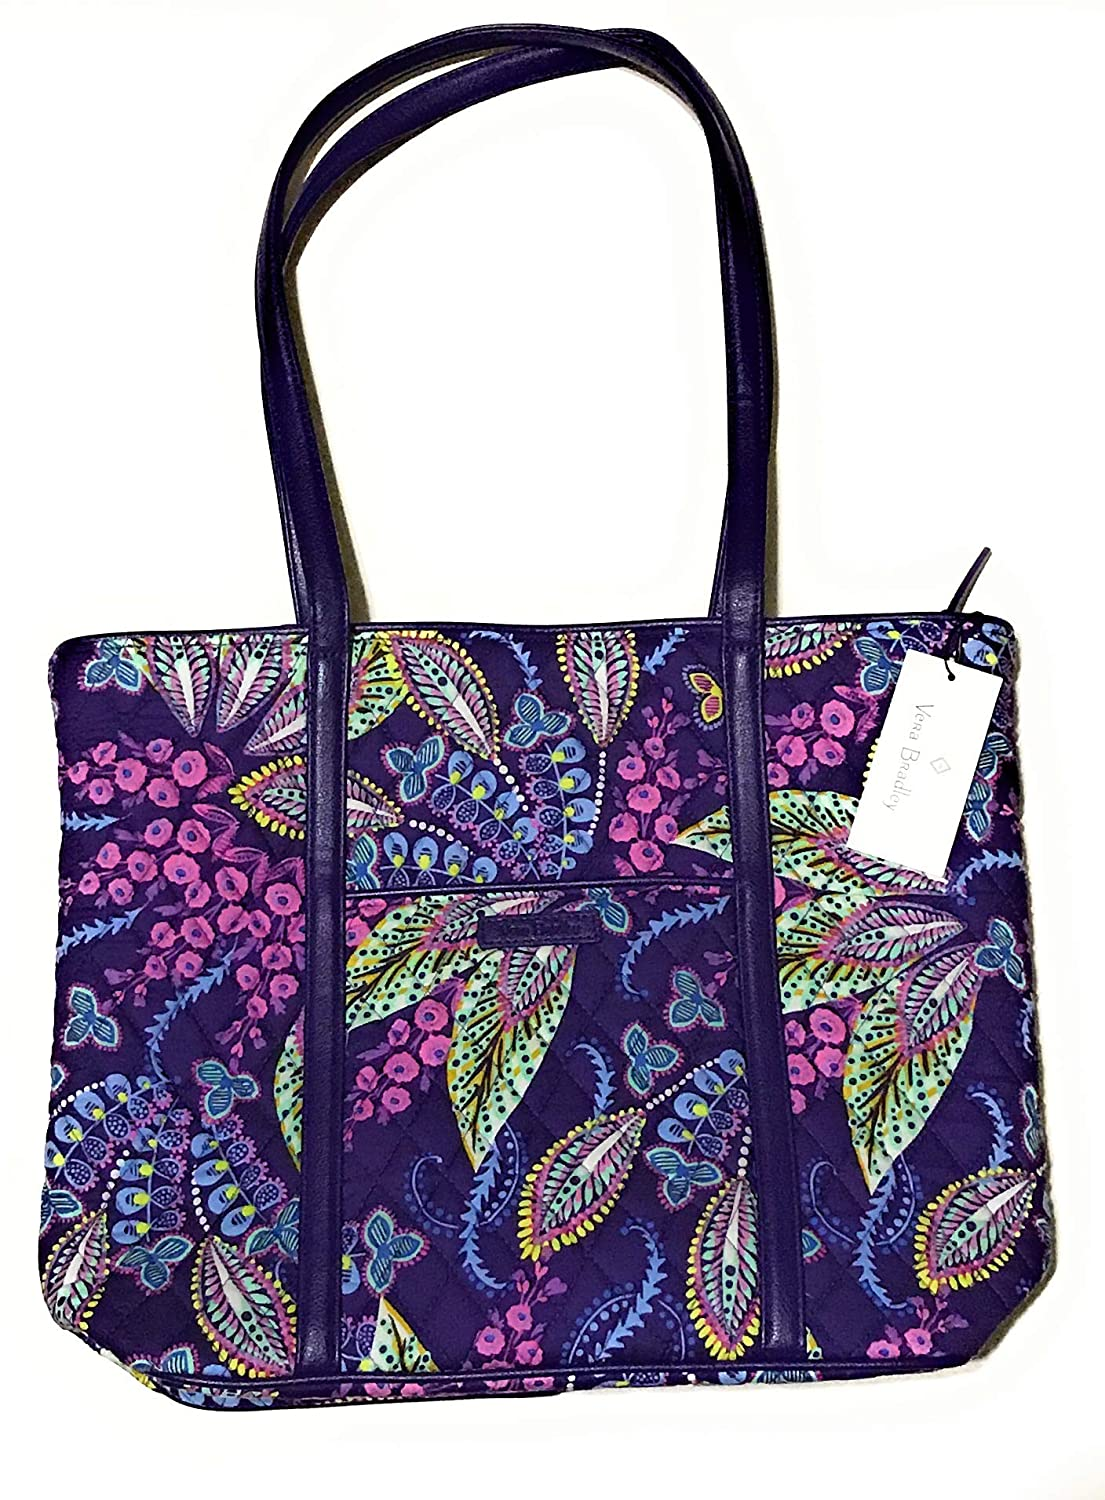 db330845caad Amazon.com  Vera Bradley Small Trimmed Vera Batik Leaves  Shoes